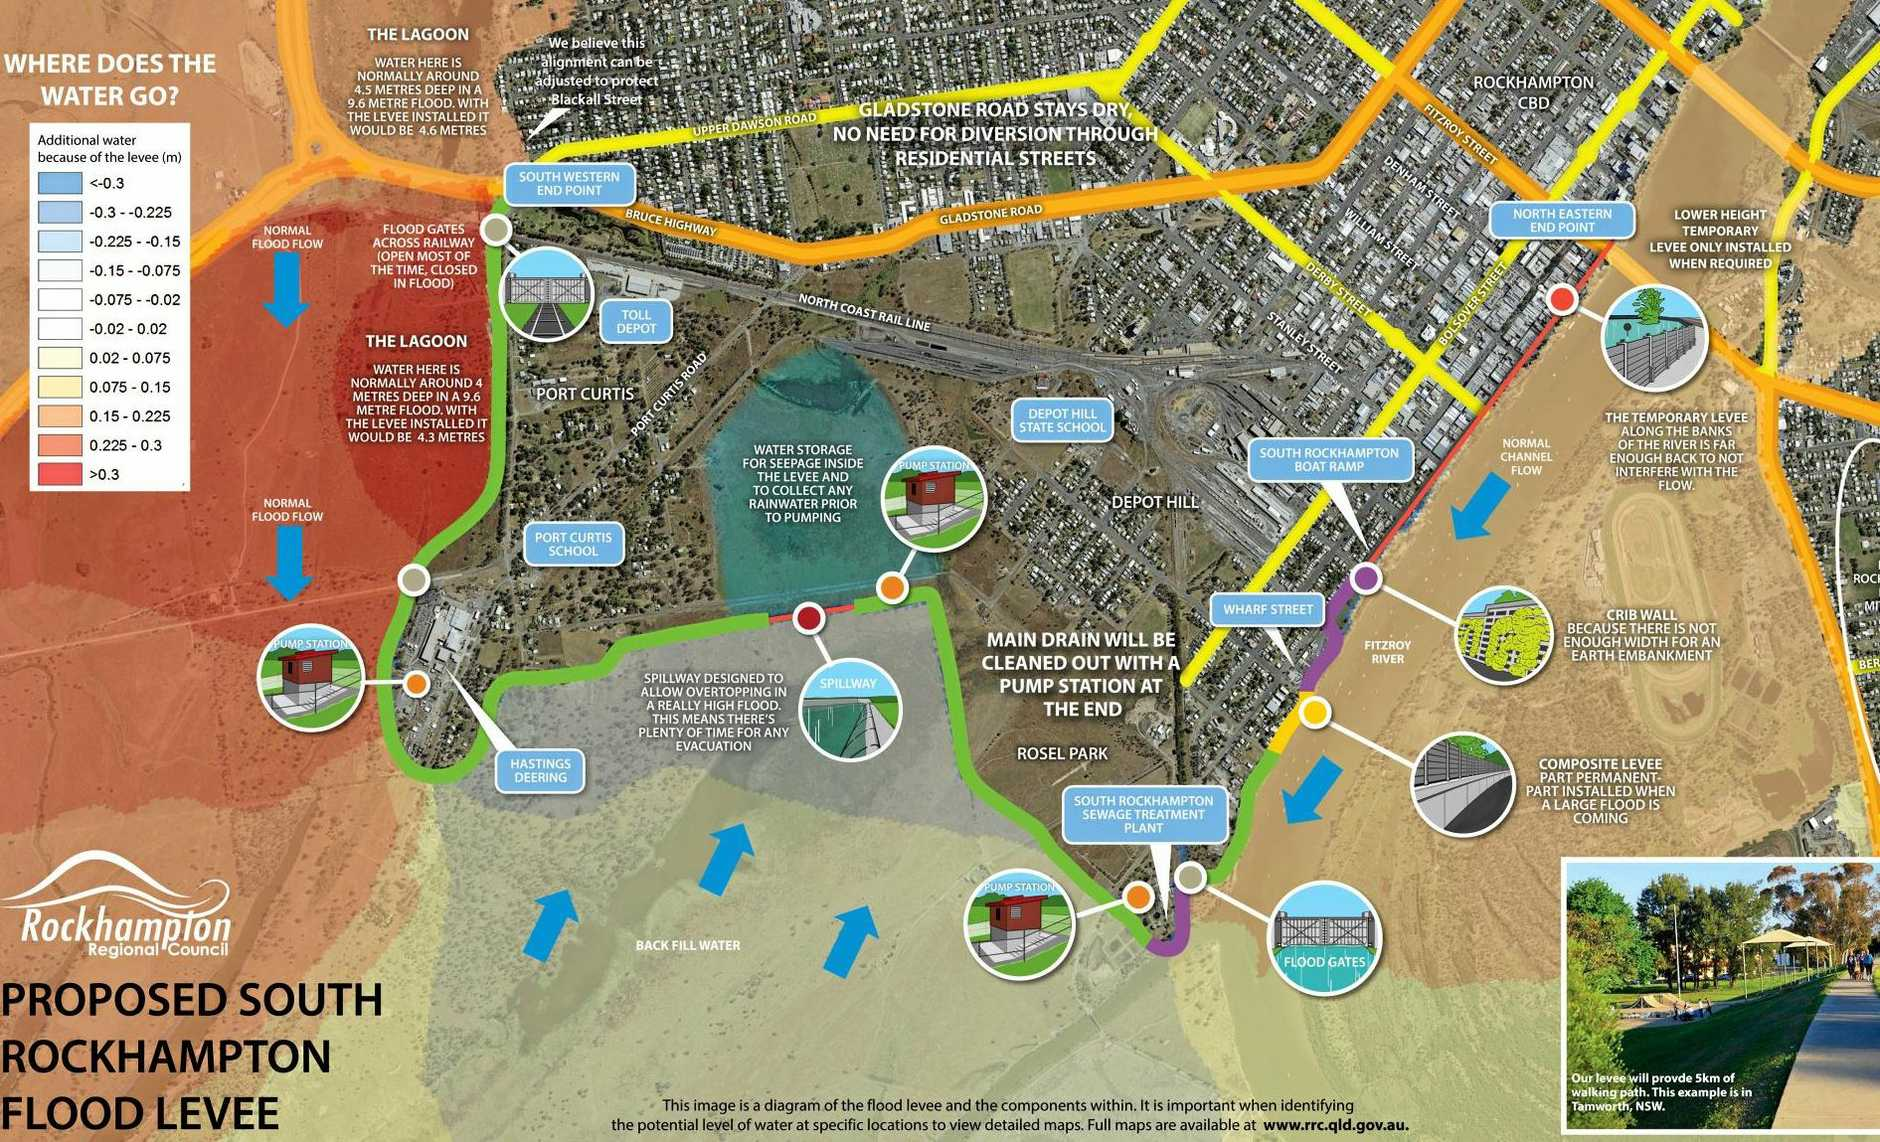 Alignment map for the South Rockhampton Flood Levee, which reveals exactly where will be protected and where potential flood water may rise once the $60 million project is constructed.